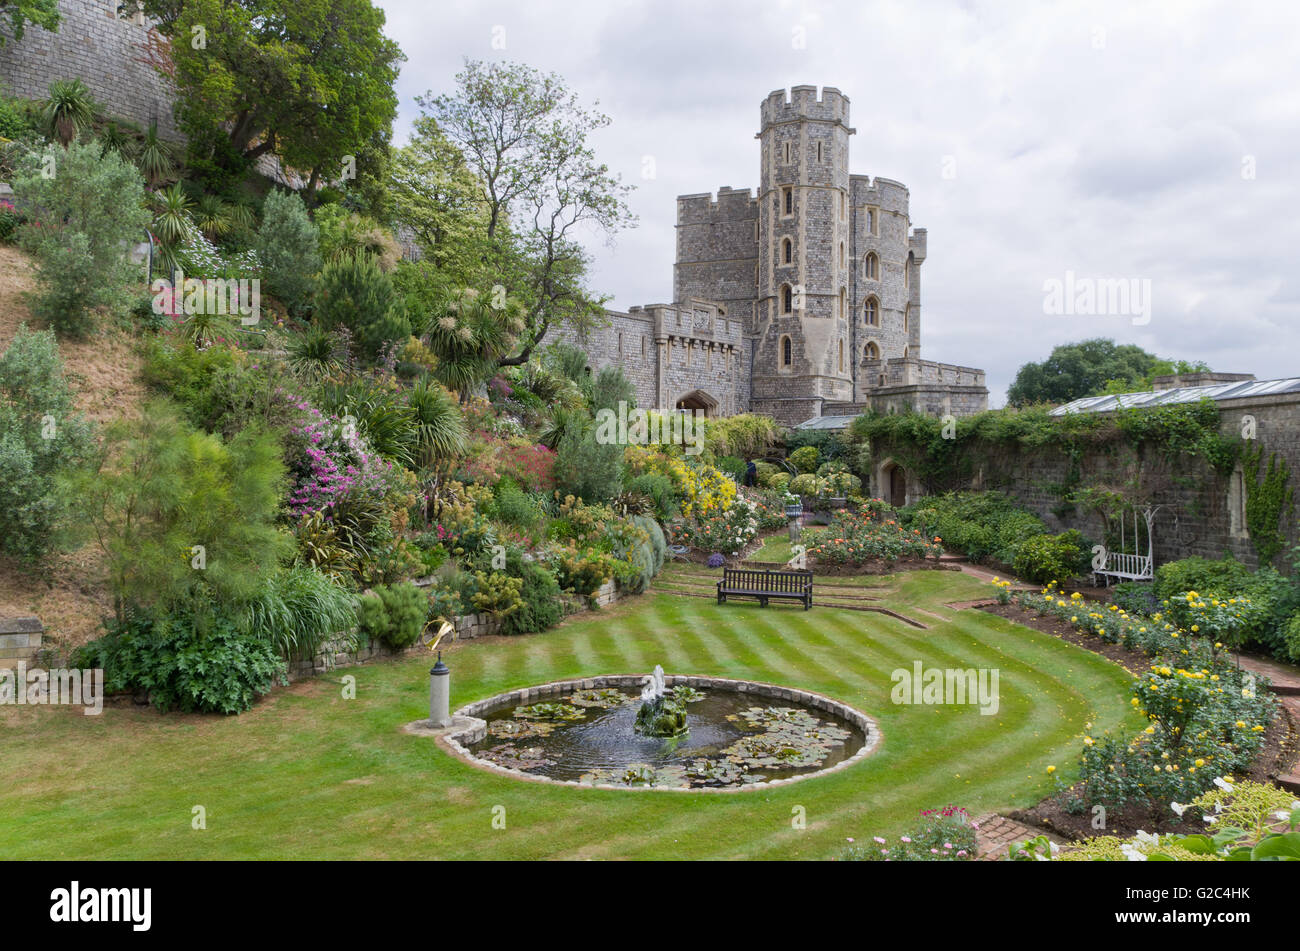 Windsor Castle, the residence of the Royal Family, Berkshire, UK - Stock Image